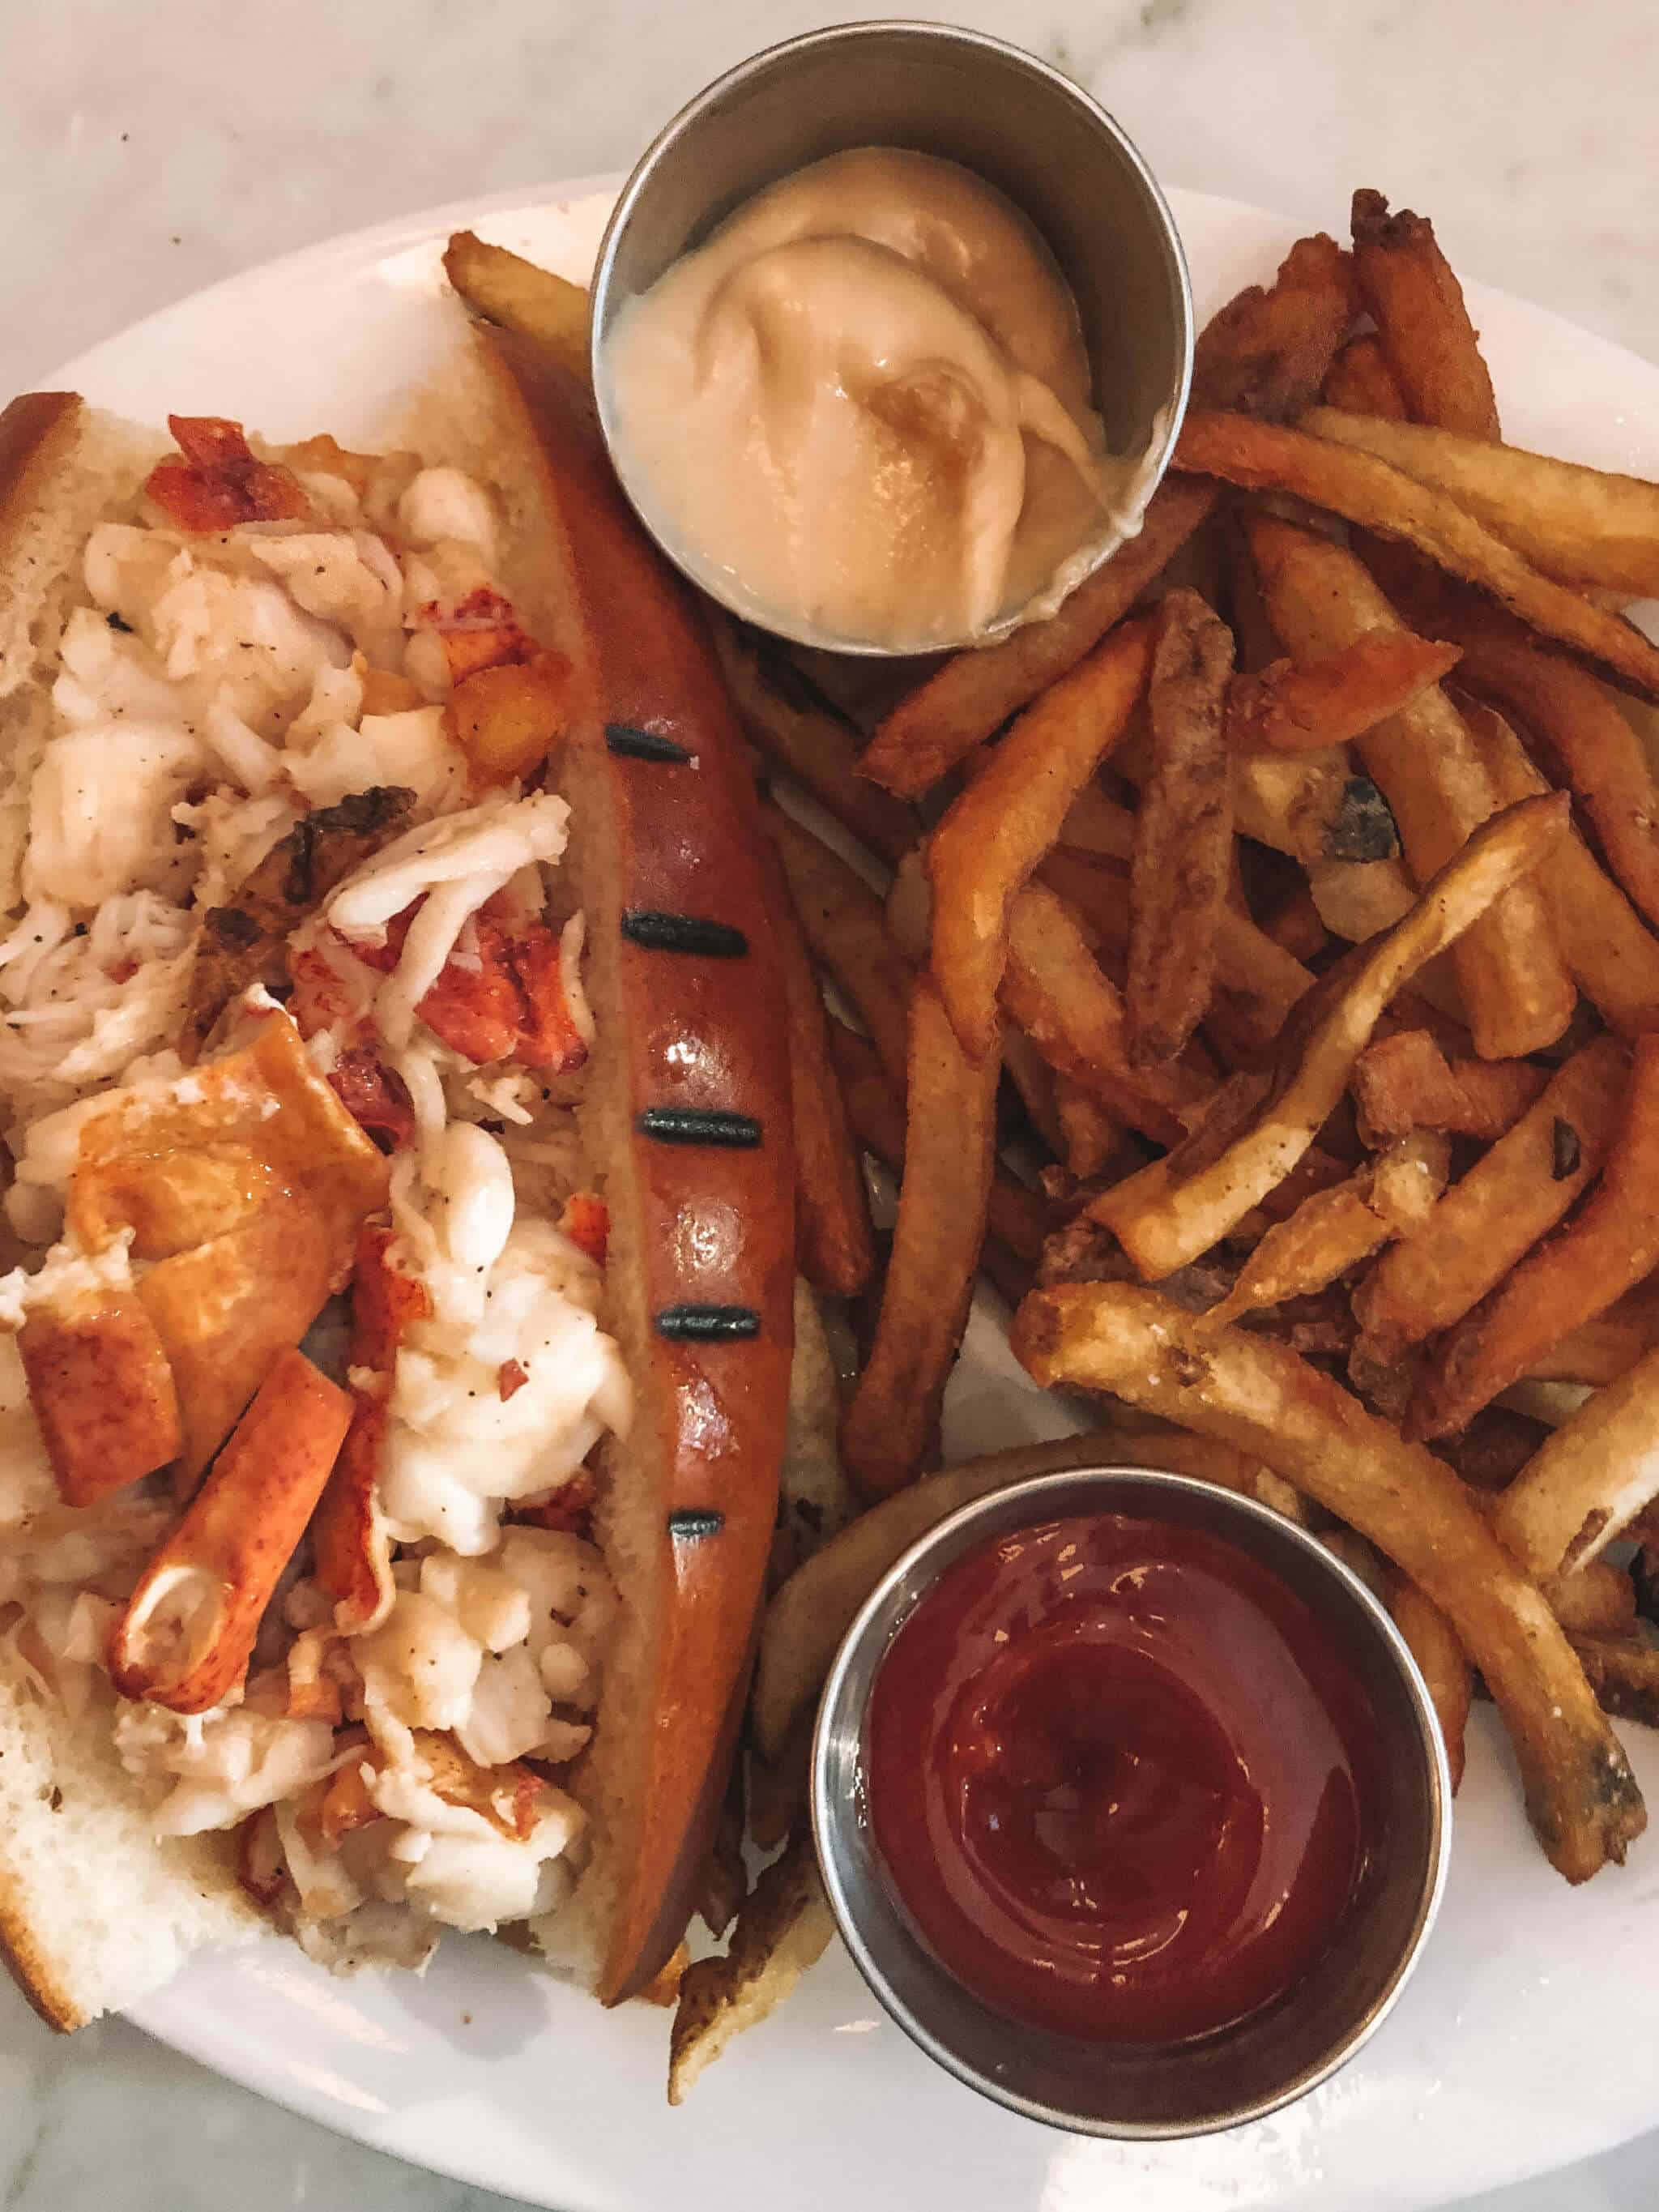 Top 10 Things to do in Boston - Gorge on Lobster Rolls